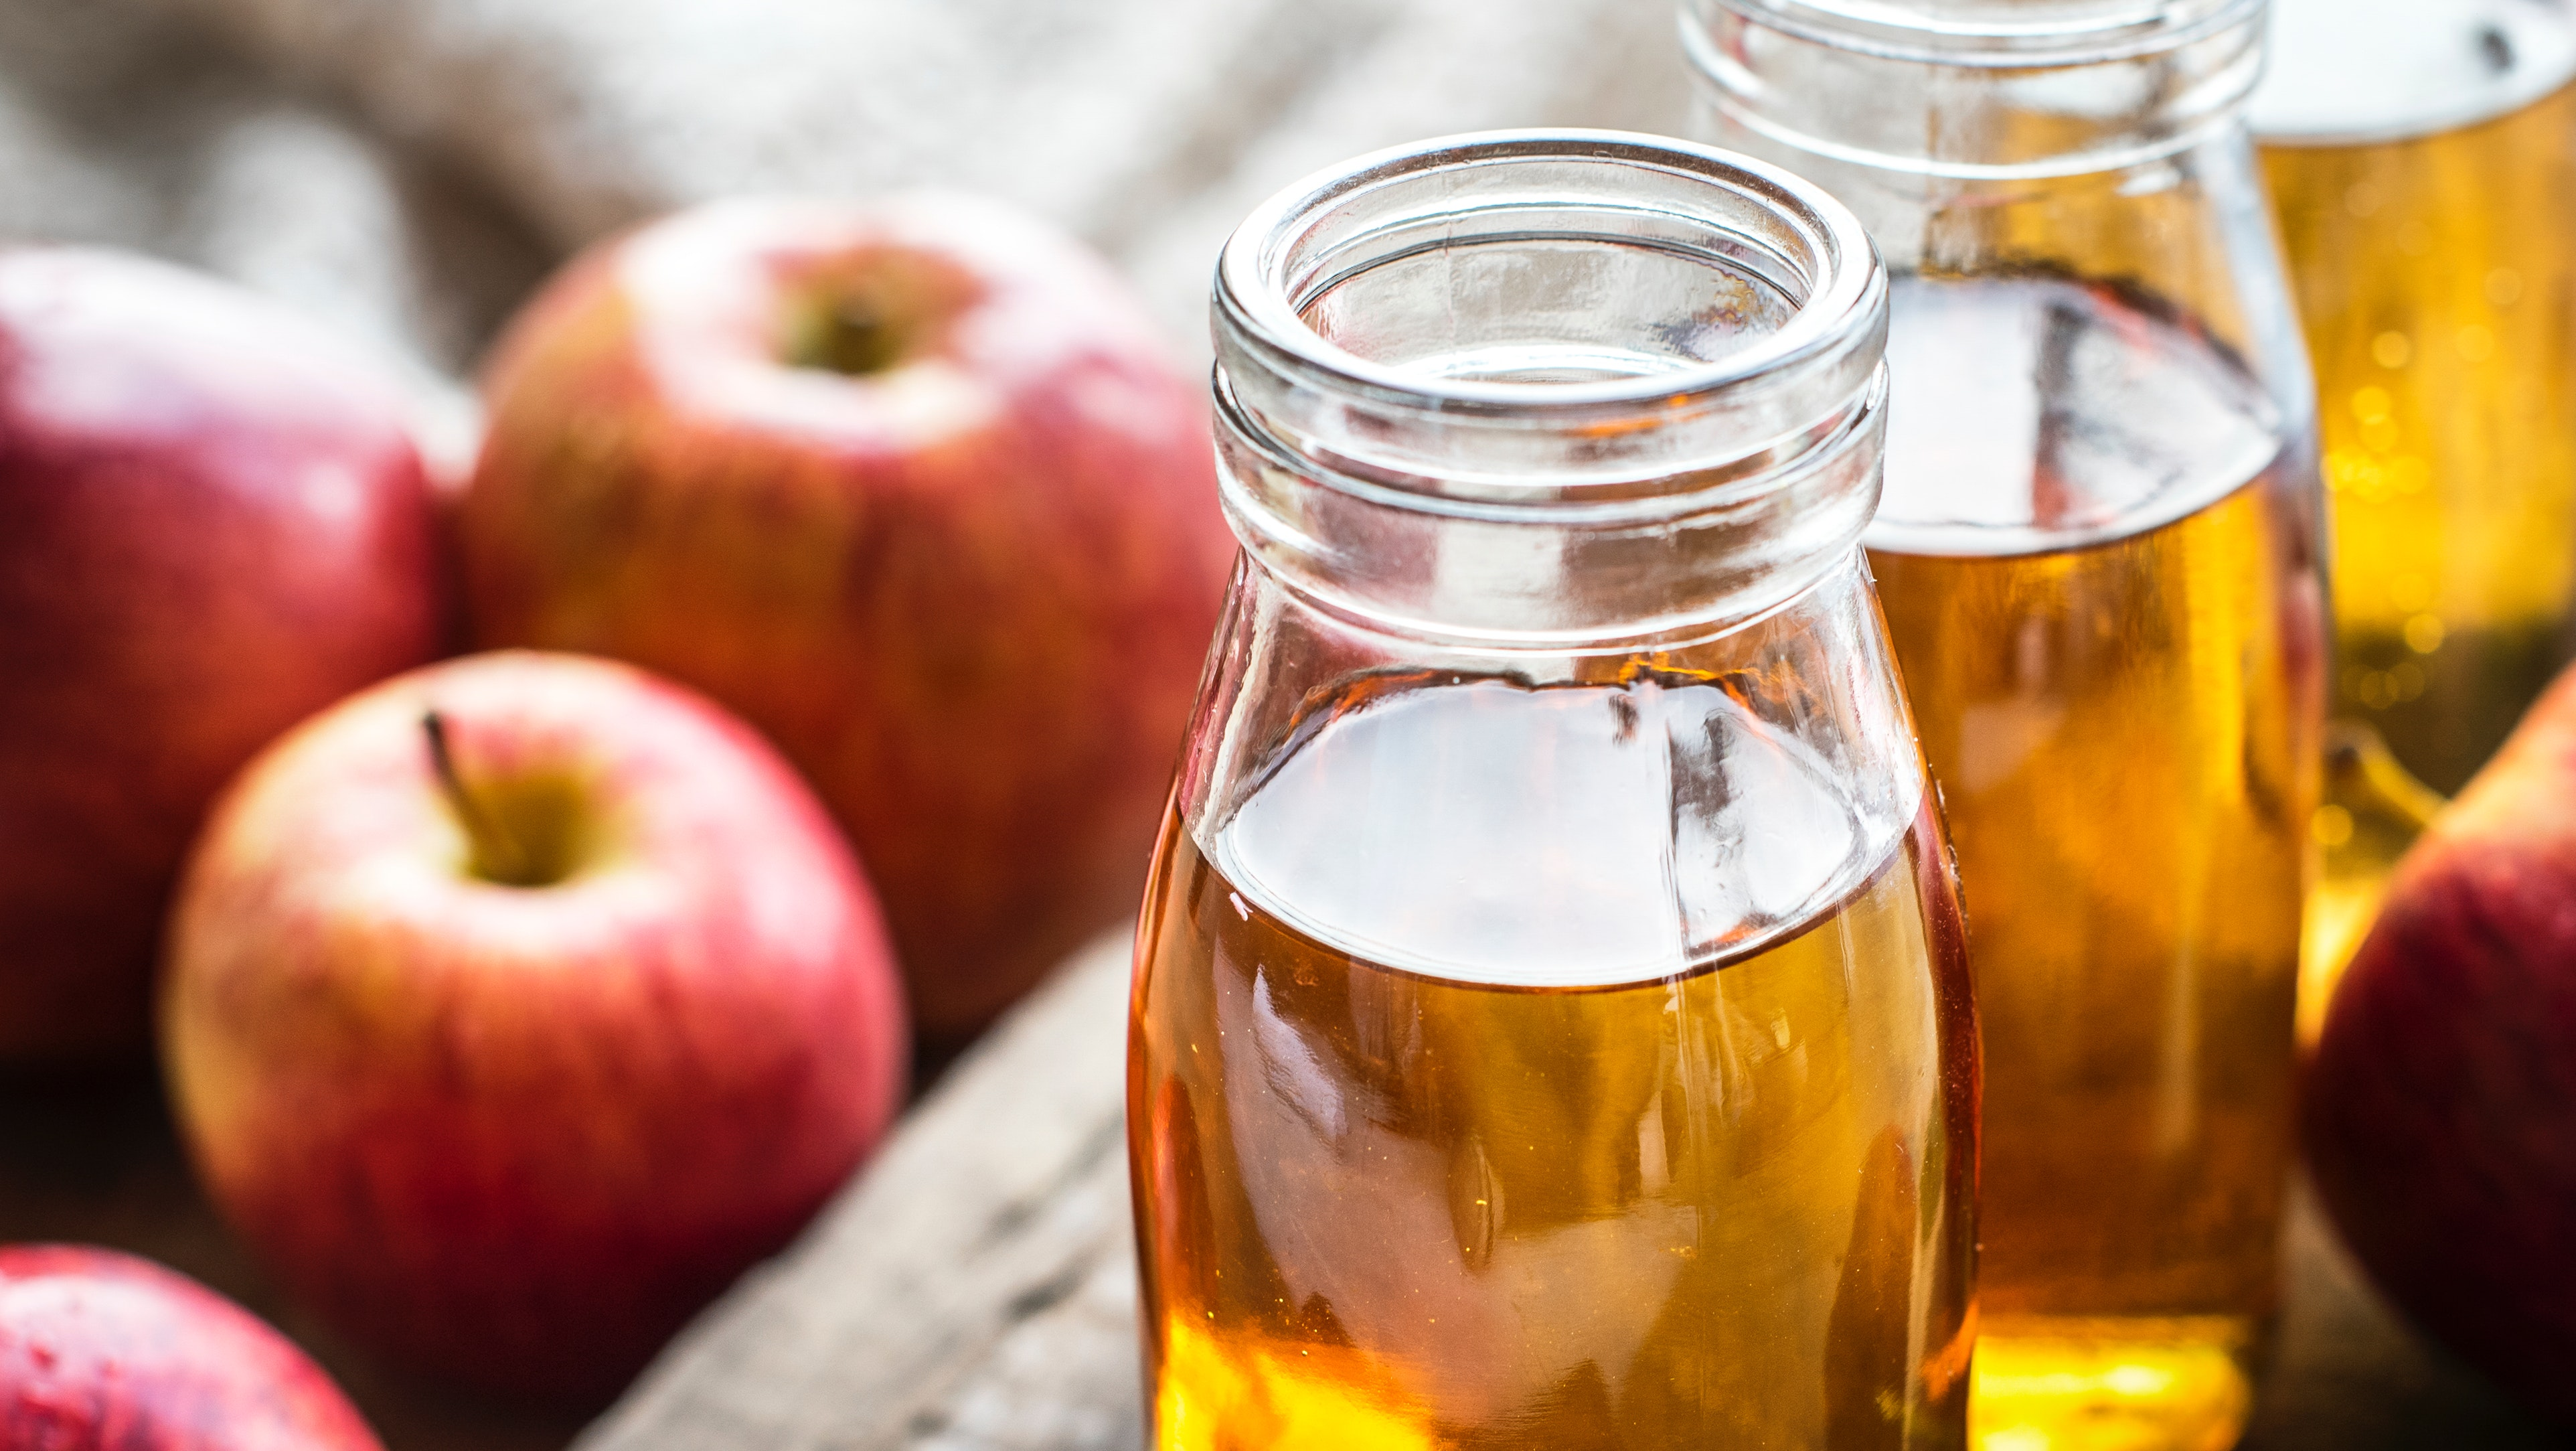 Apples and glasses of apple juice